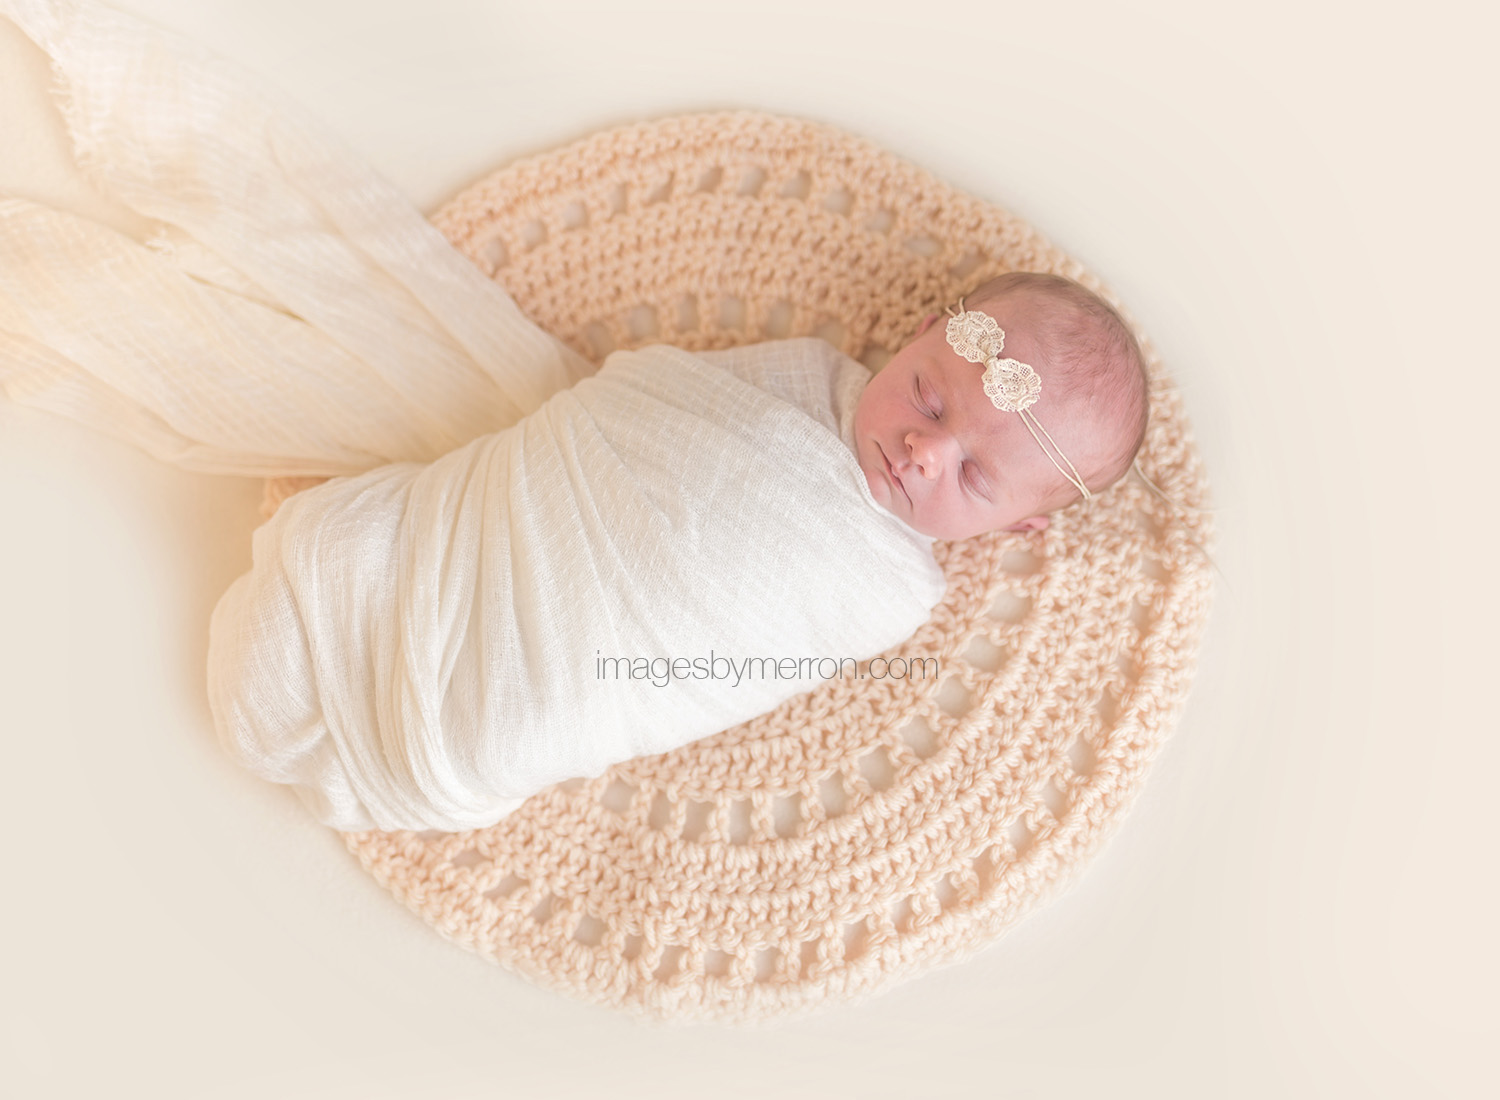 Newborn photographer | Baby Photographer | Baby pictures | Ankeny, Iowa Photographer | Des Moines baby photographer | Images by Merron